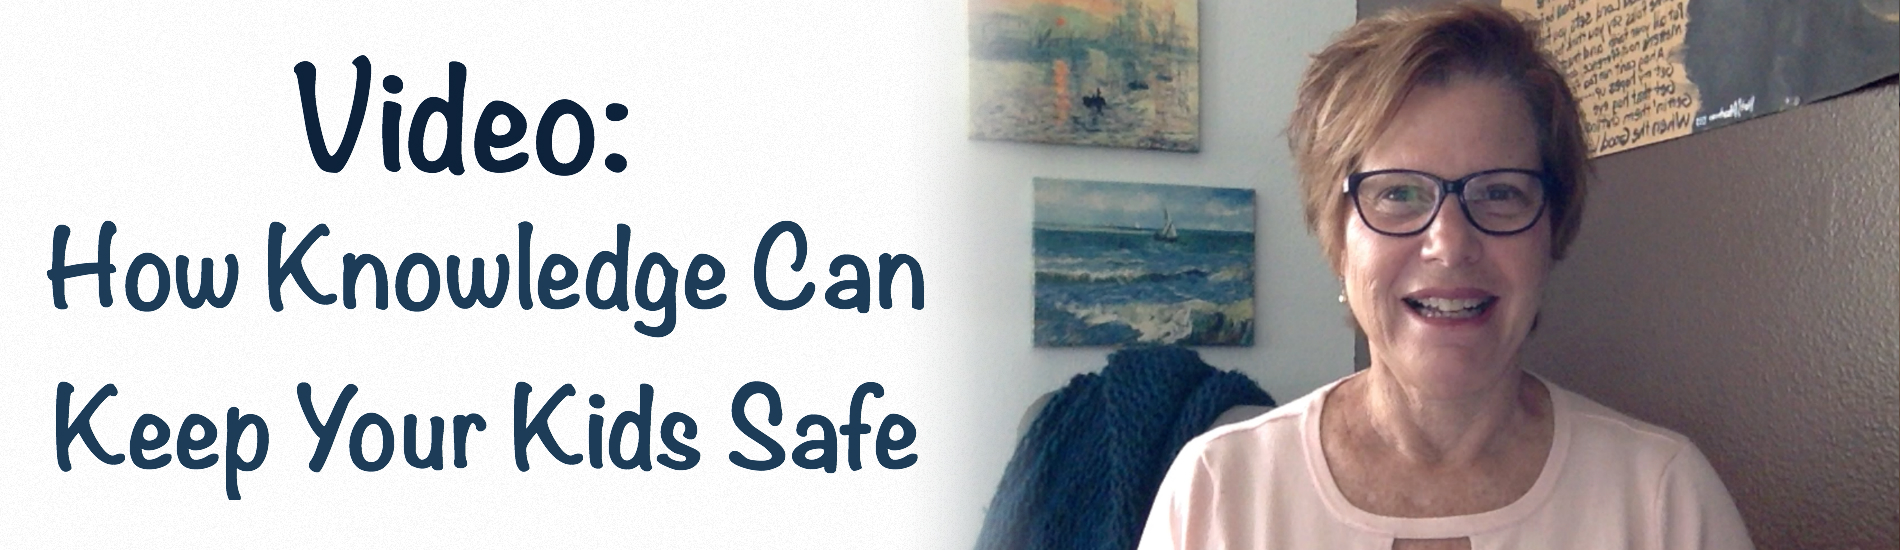 How Knowledge Can Keep Your Kids Safe